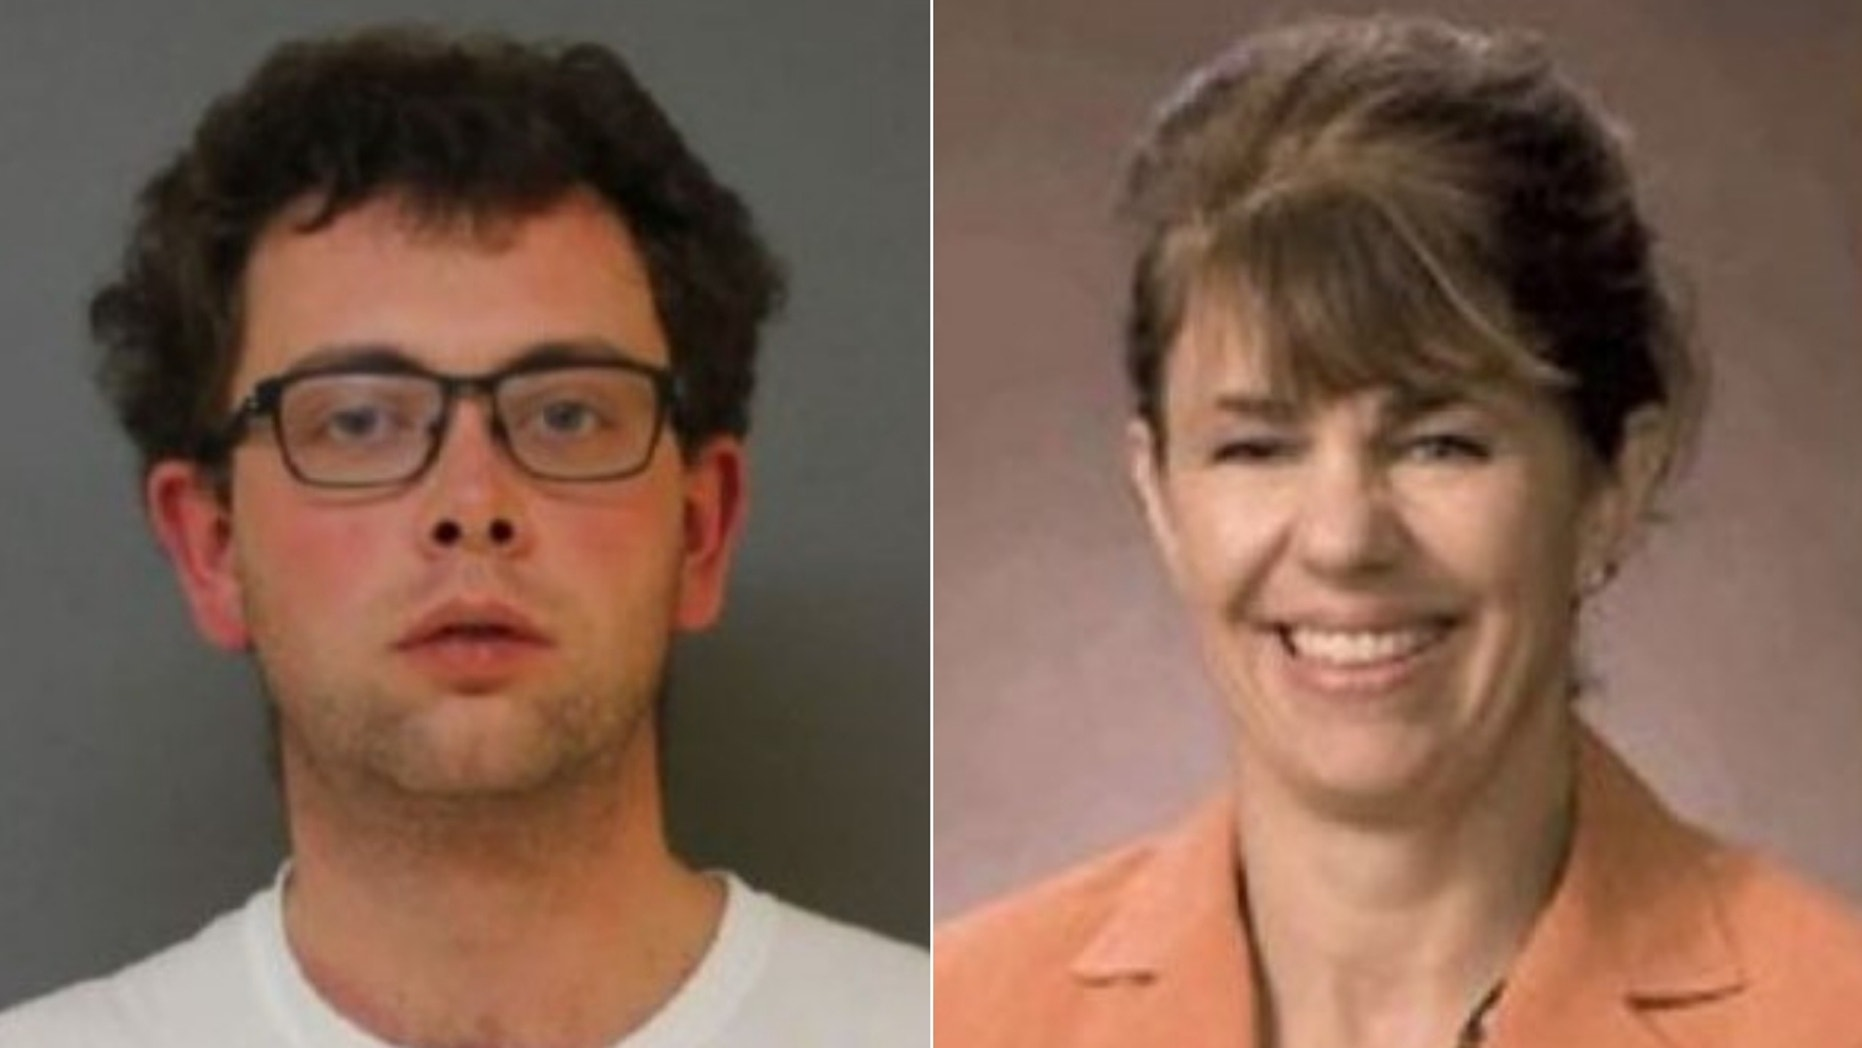 William Winters Leverett, 27, (left) was arrested in the murder of Melissa Millan, 54, (right).